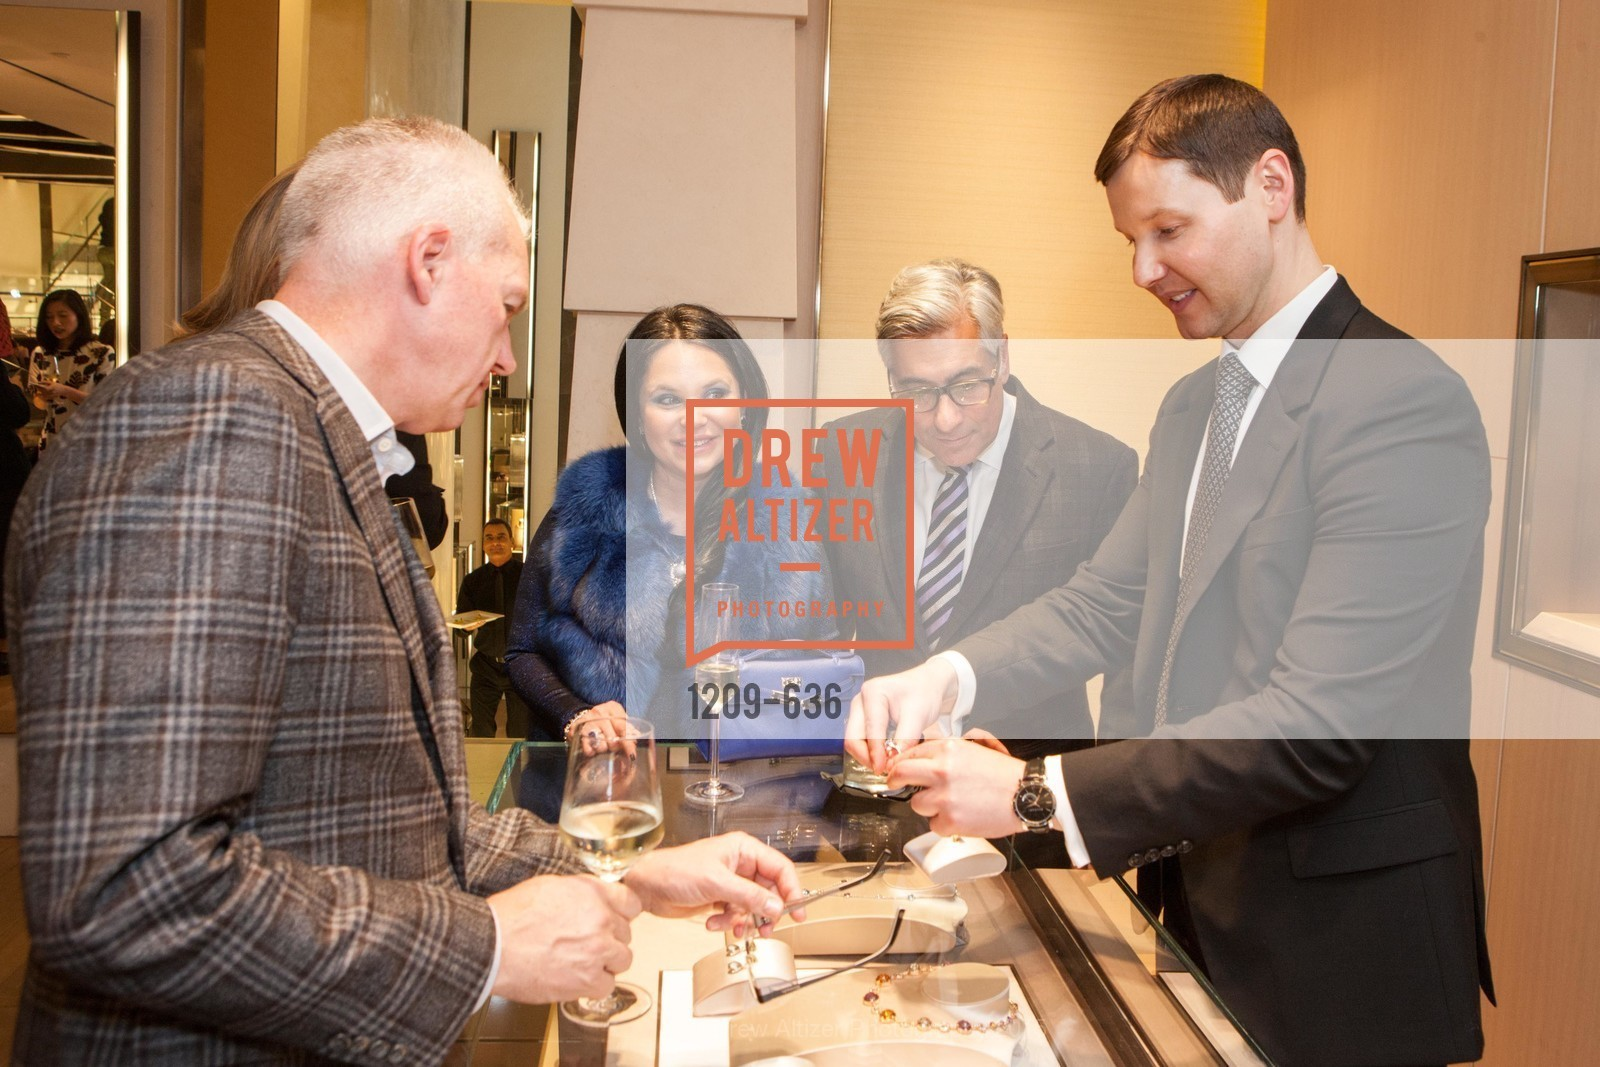 Rada Katz, David Shimmon, Ivan Bekichev, Bulgari San Francisco Presents WINE, WHISKEY & WATCHES, Bulgari San Francisco. 200 Stockton Street, December 8th, 2015,Drew Altizer, Drew Altizer Photography, full-service event agency, private events, San Francisco photographer, photographer California